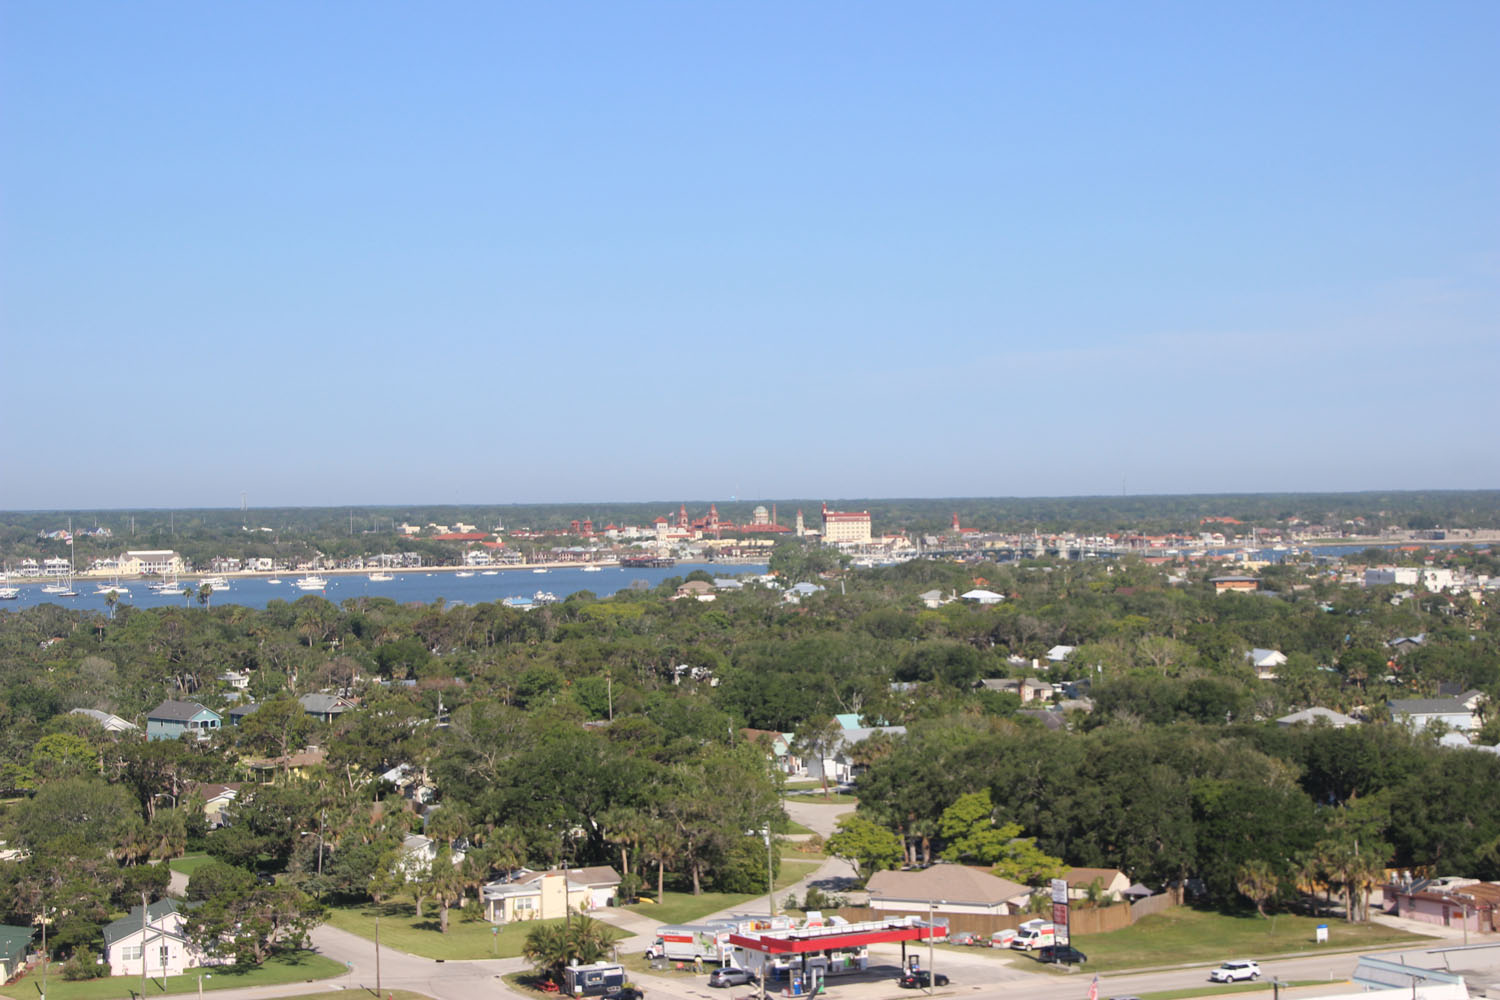 Looking west to St Augustine.